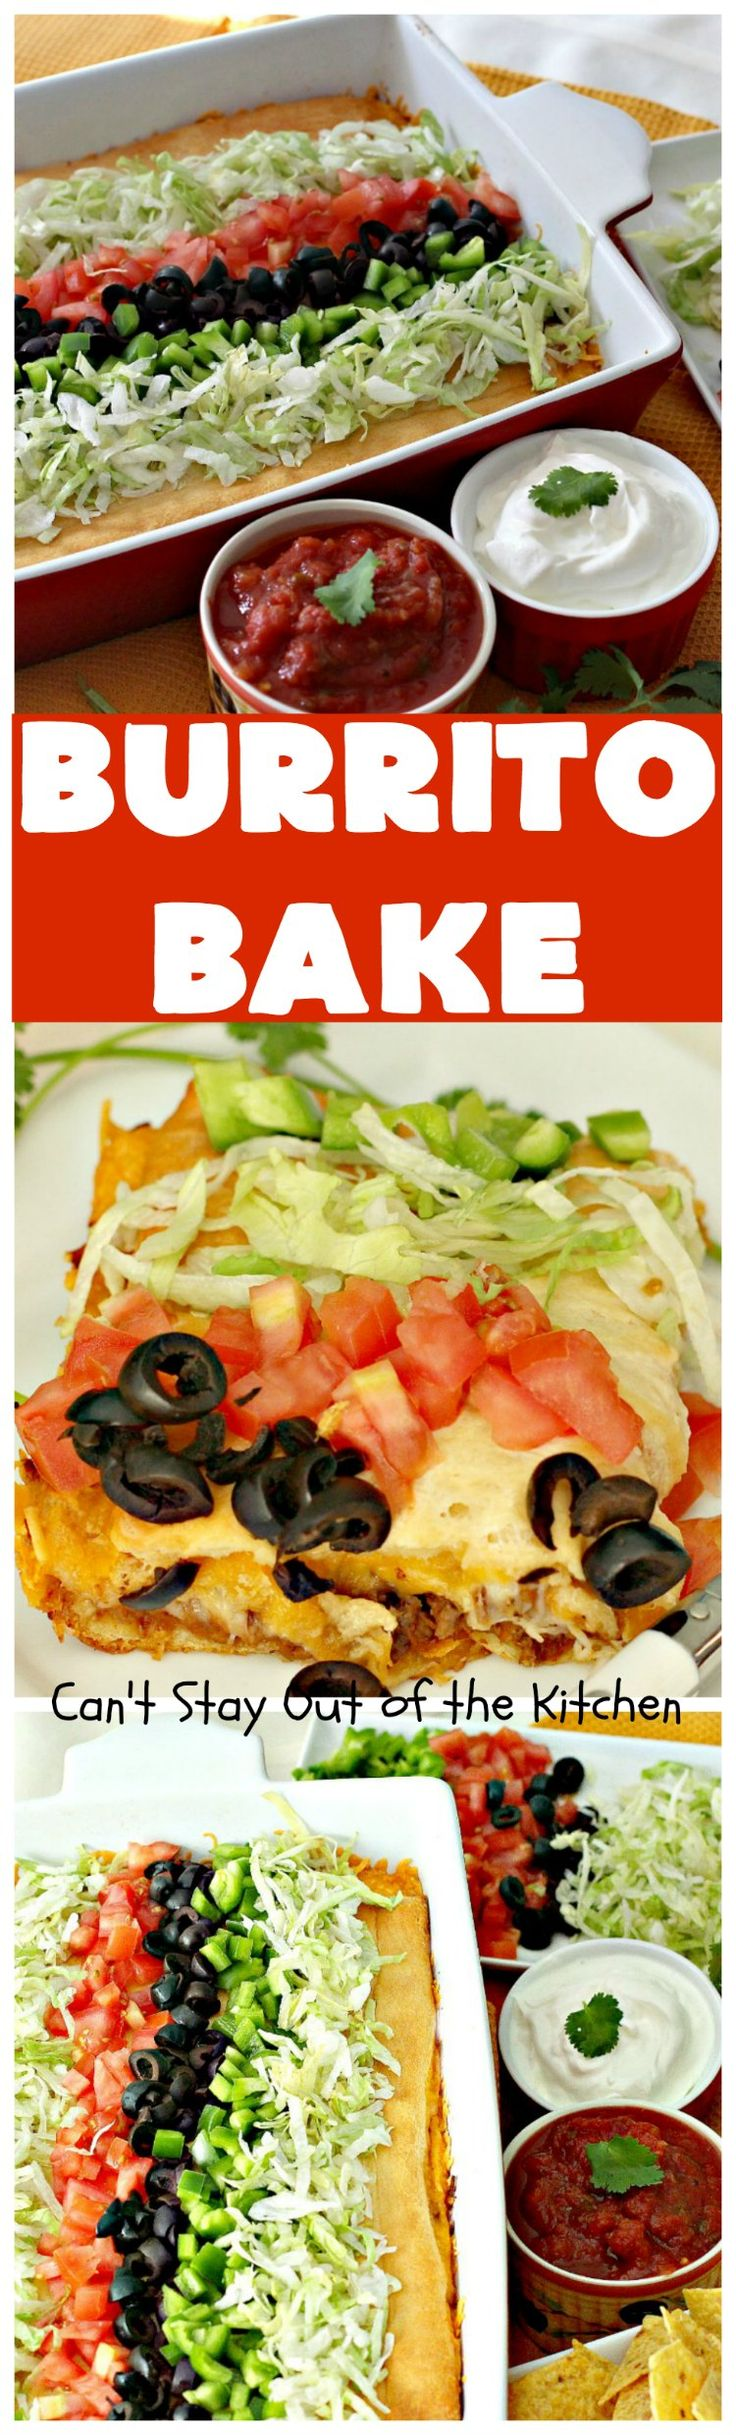 Burrito Bake   Can't Stay Out of the Kitchen   this incredibly easy #TexMex entree is layered with #crescentrolls, a #beef & #refriedbeans mixture, two cheeses & topped with olives, tomatoes & lettuce. It's served with #salsa & #guacamole for a fabulous one-dish meal that's perfect for weeknight suppers or company dinners.